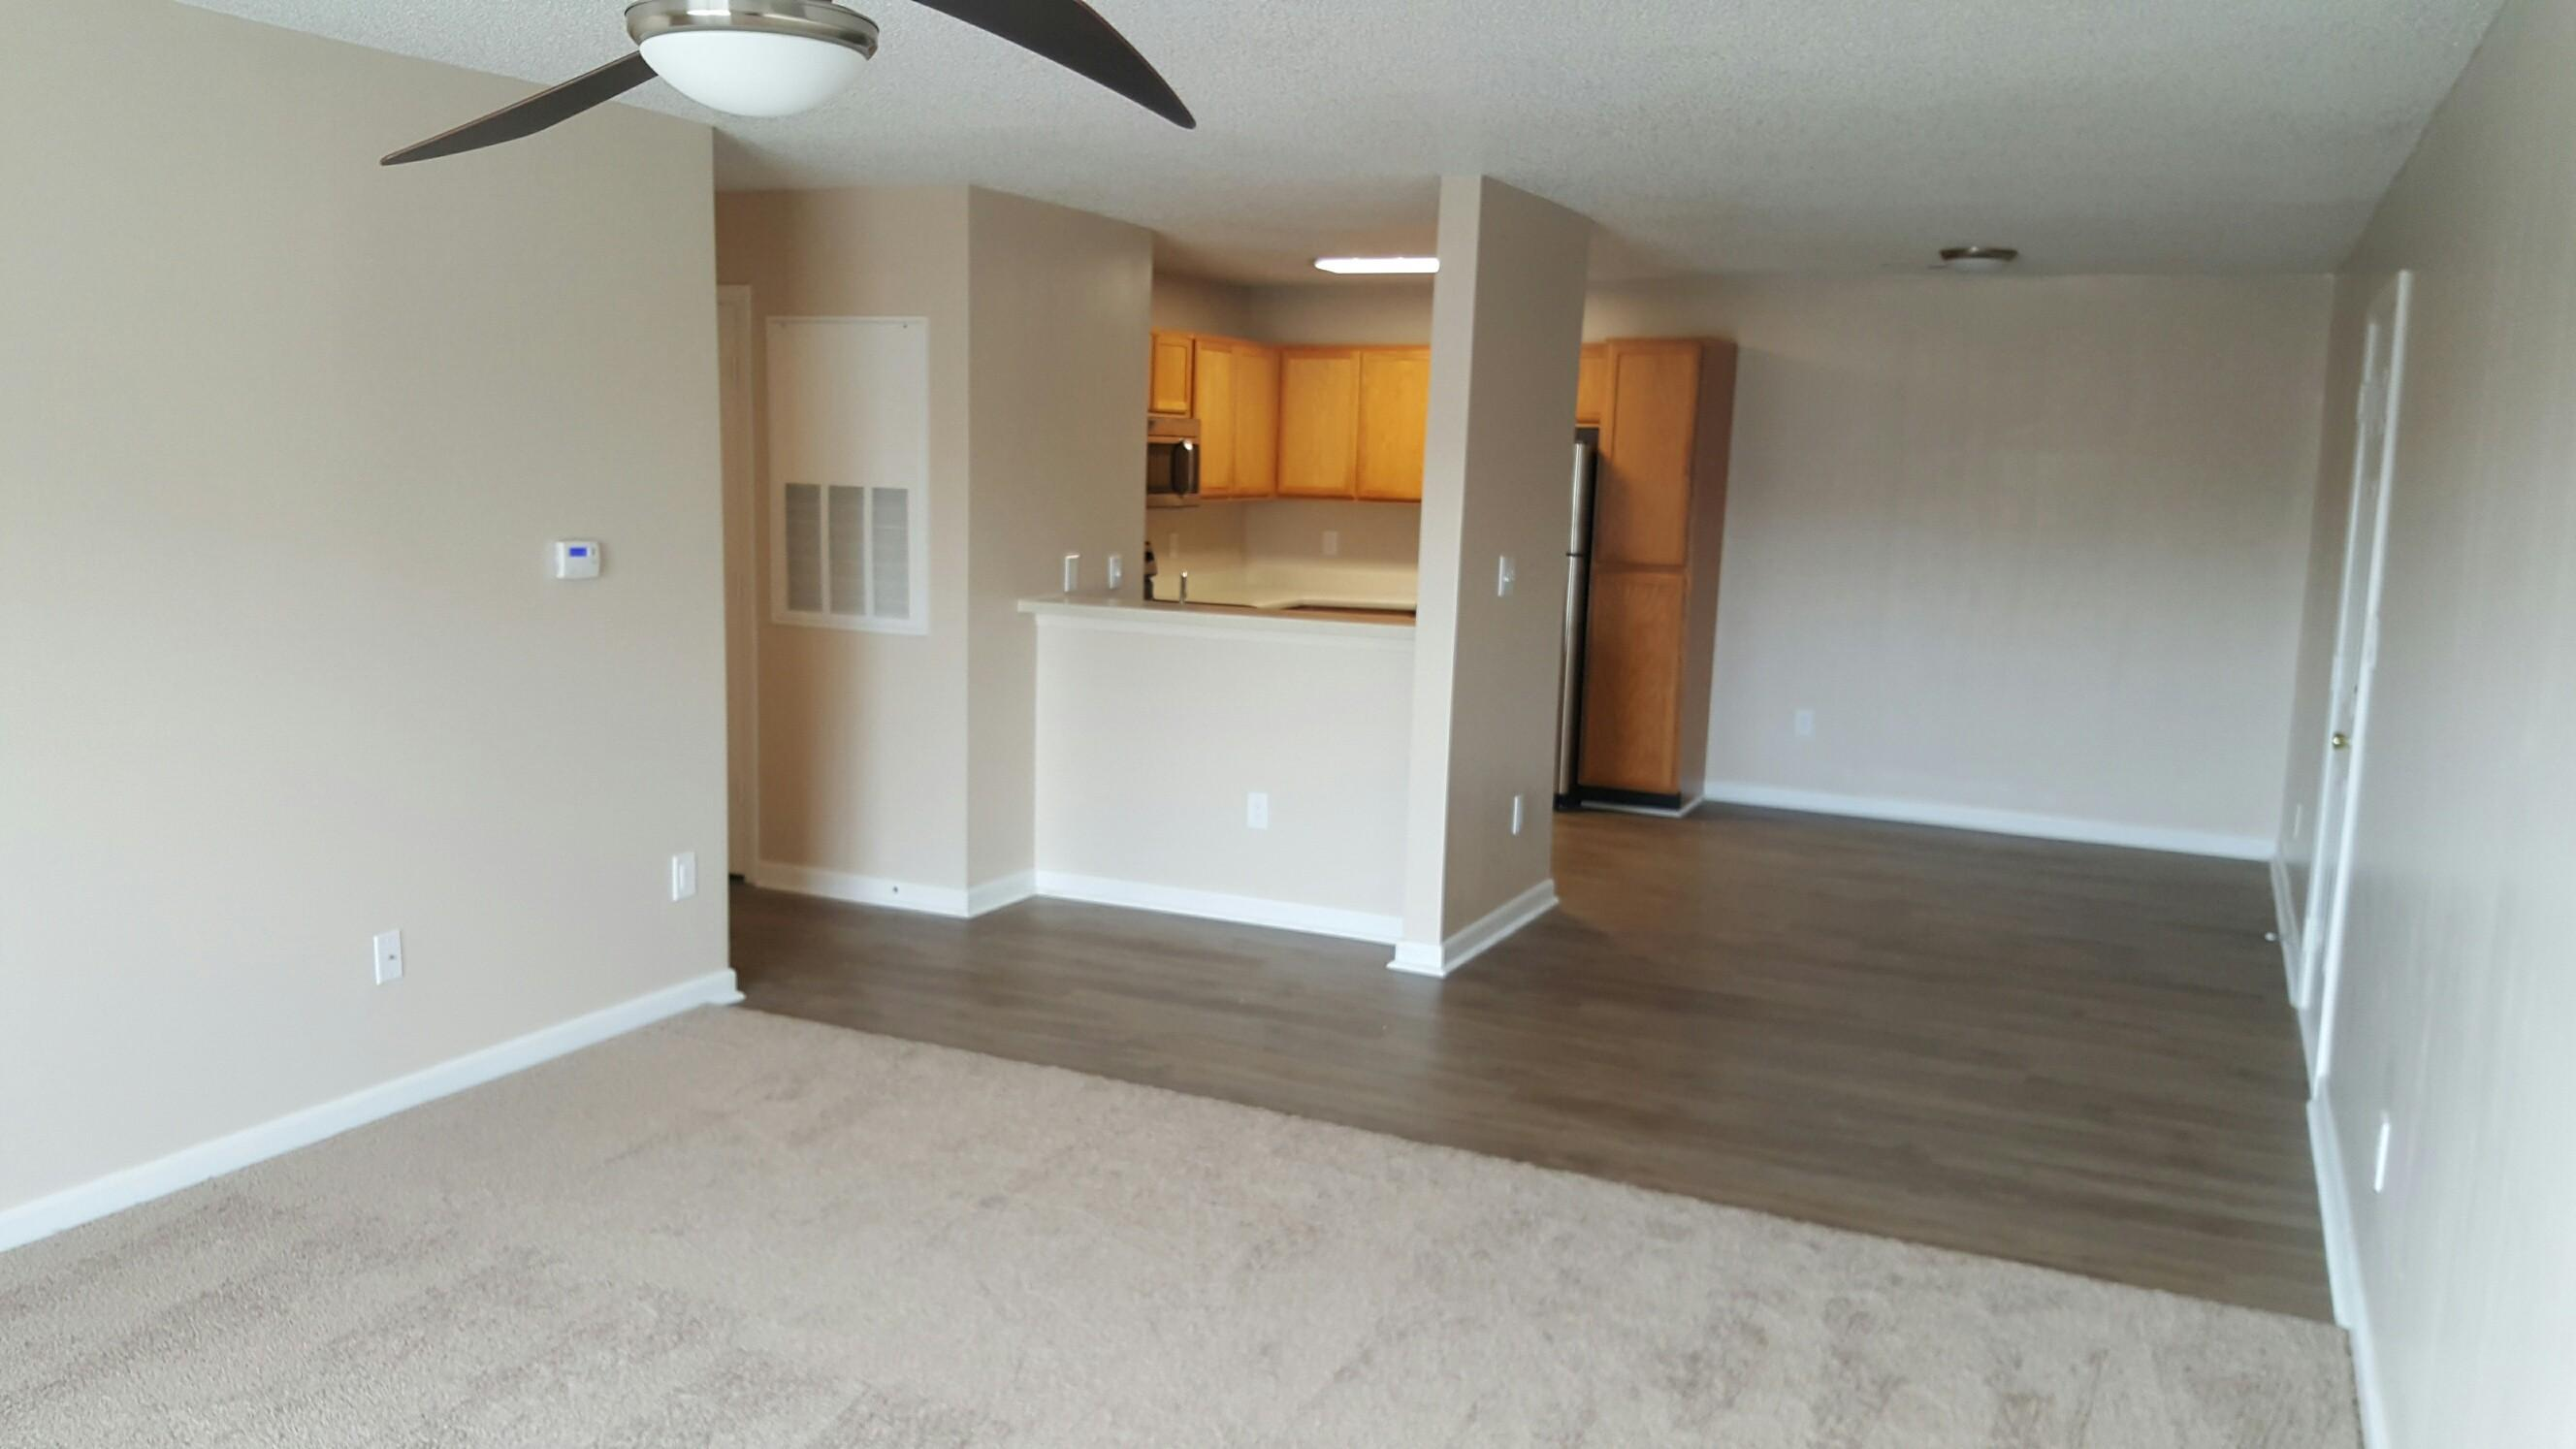 One Bedroom Apartments In Greenville Nc Lakeside Apartments Greenville Nc Walk Score